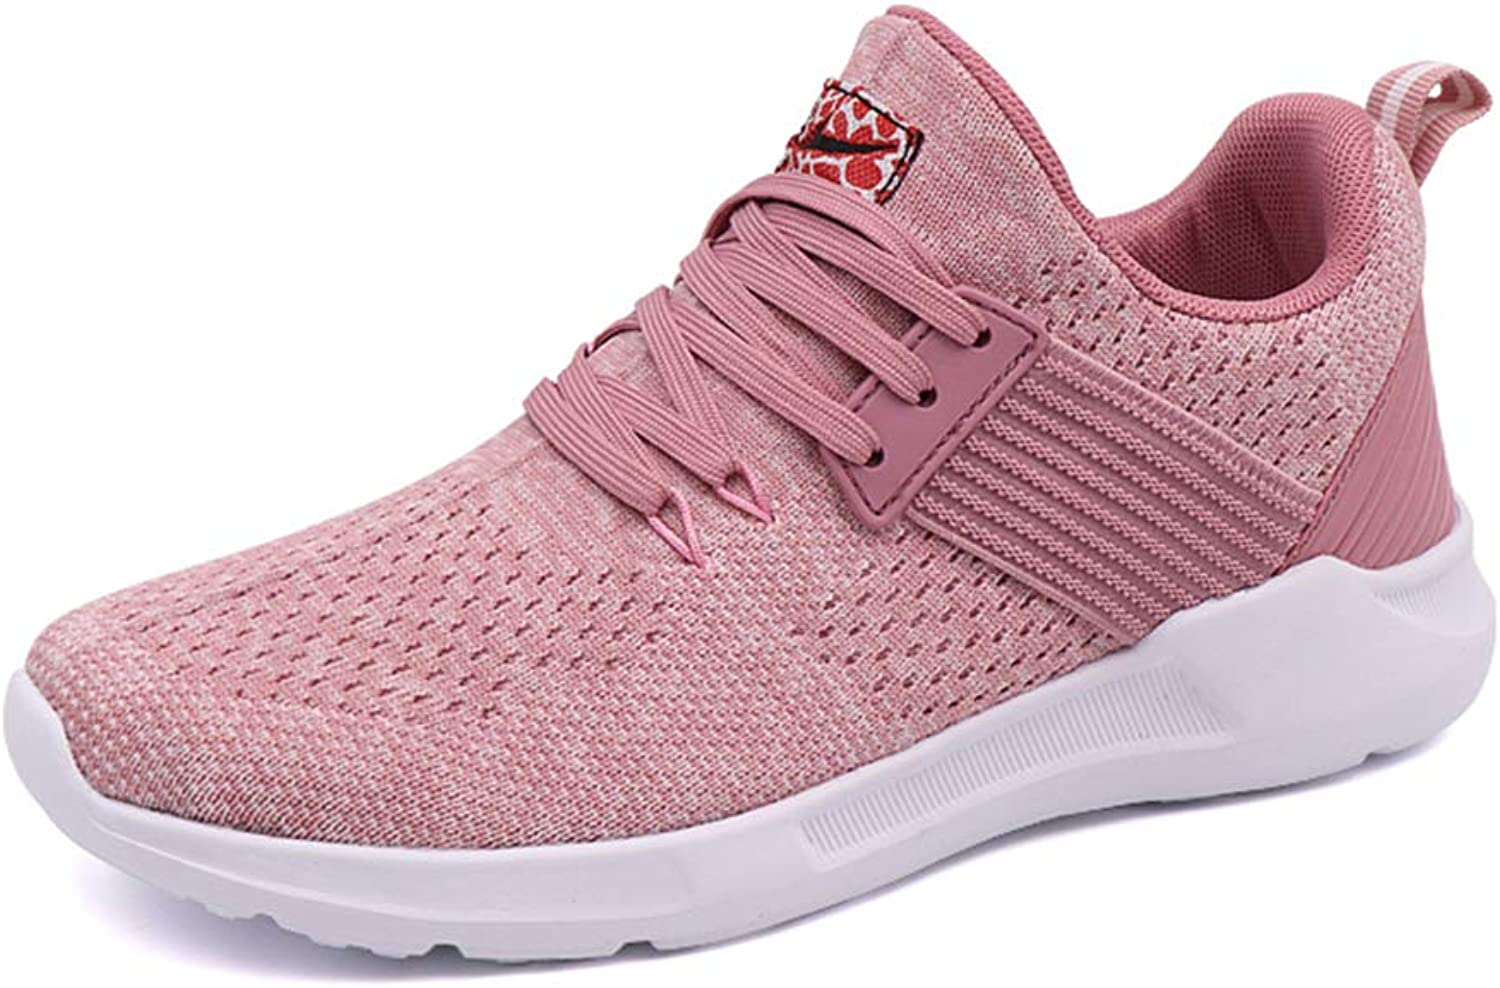 Beita Breathable Woman Running shoes Outdoor Sport Walking shoes Casual Athletic Sneakers Lightweight Soft Black